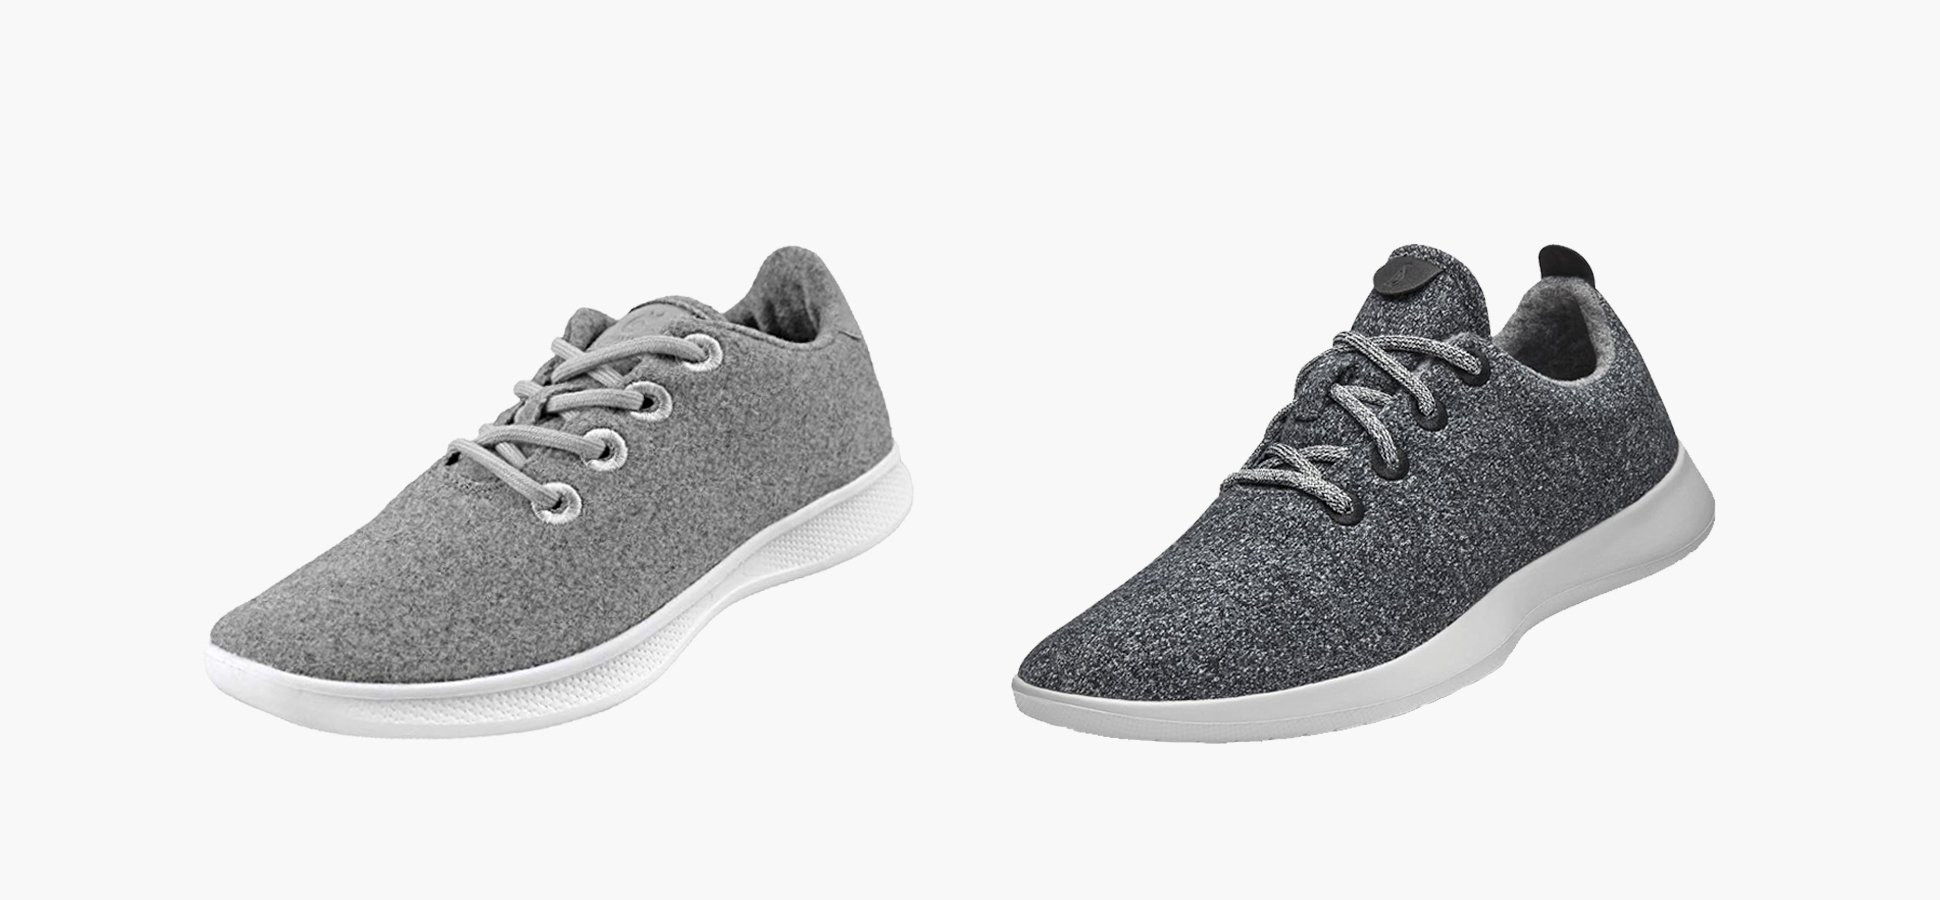 Amazon Is Raising Eyebrows Again, Selling a $35 Shoe That's Nearly Identical to $95 Allbirds